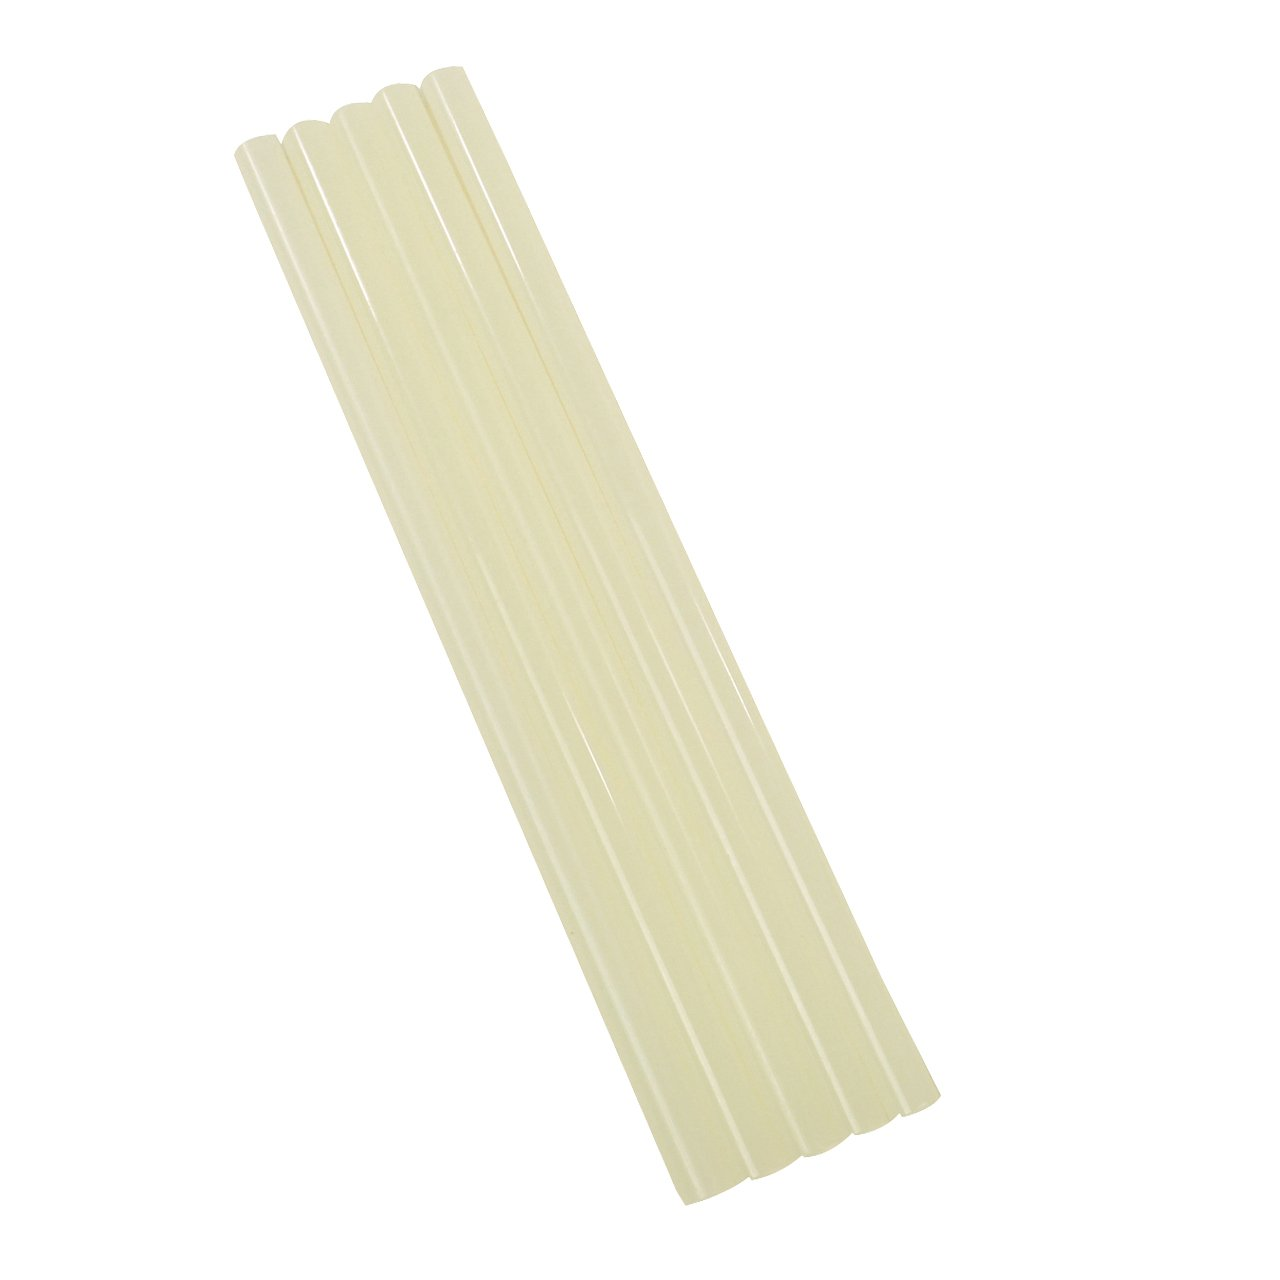 Economy Hot Melt Glue Sticks 7/16'' X 10'' 125 Sticks 7 lbs bulk by GlueSticksDirect.com (Image #2)